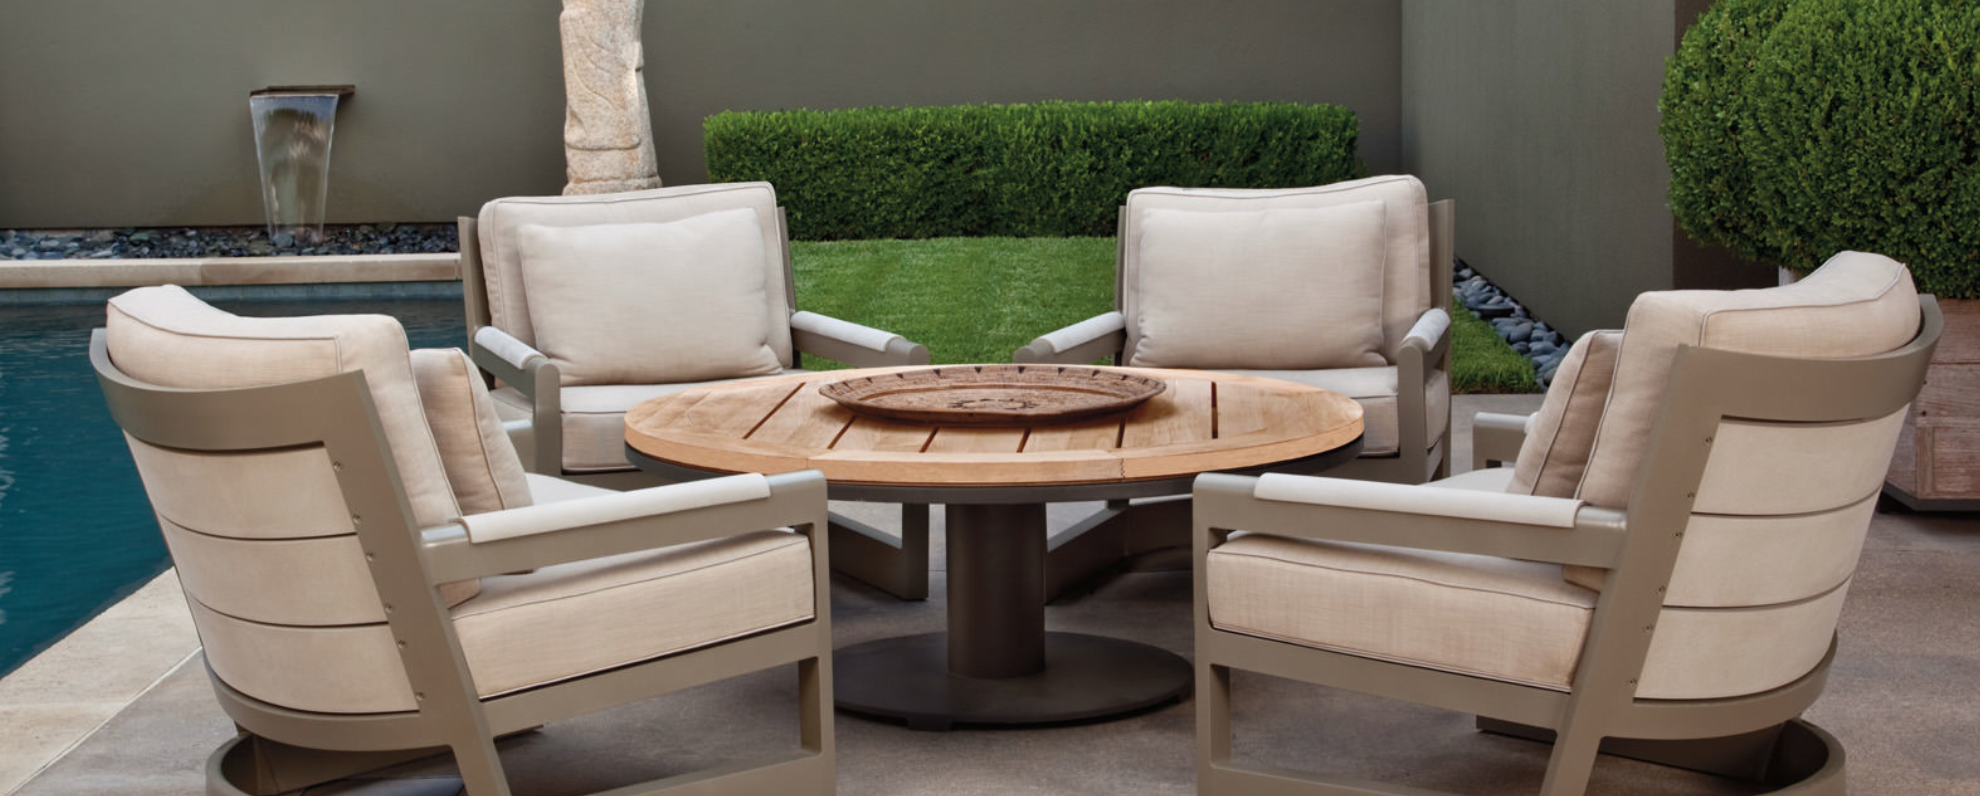 Outdoor-lounge-Great-Lakes-300x121